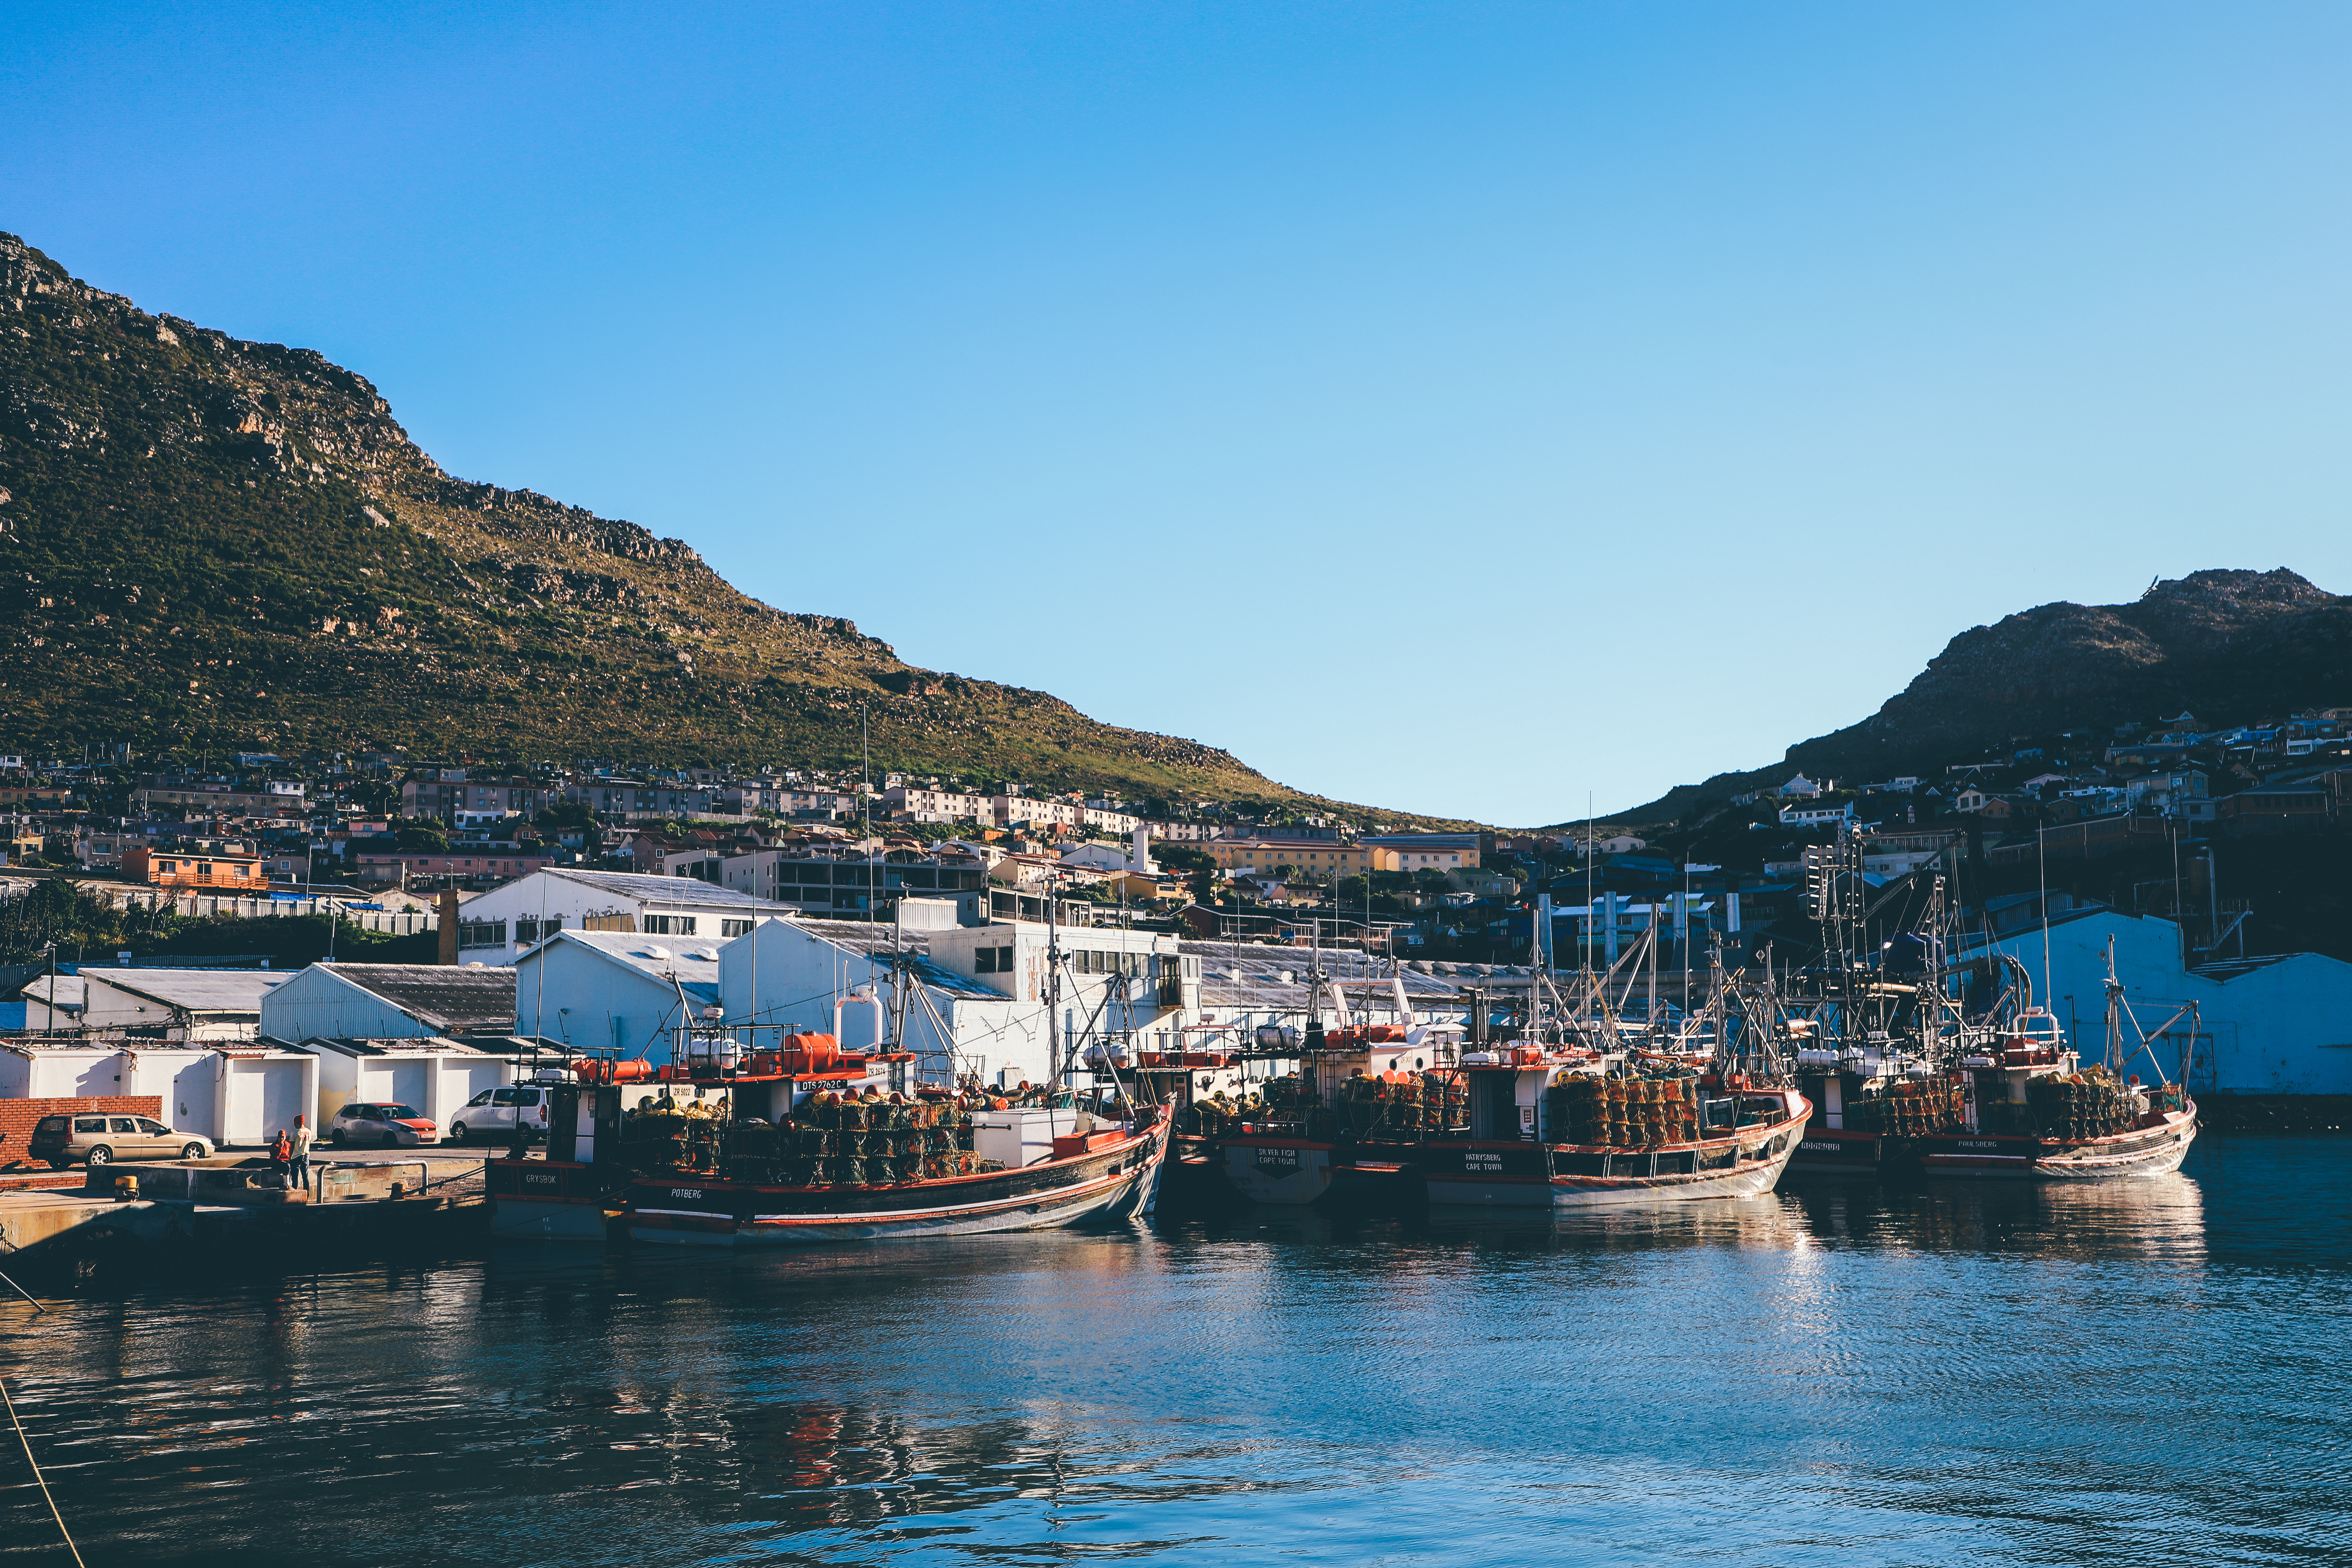 Hout Bay Harbour, Cape Town